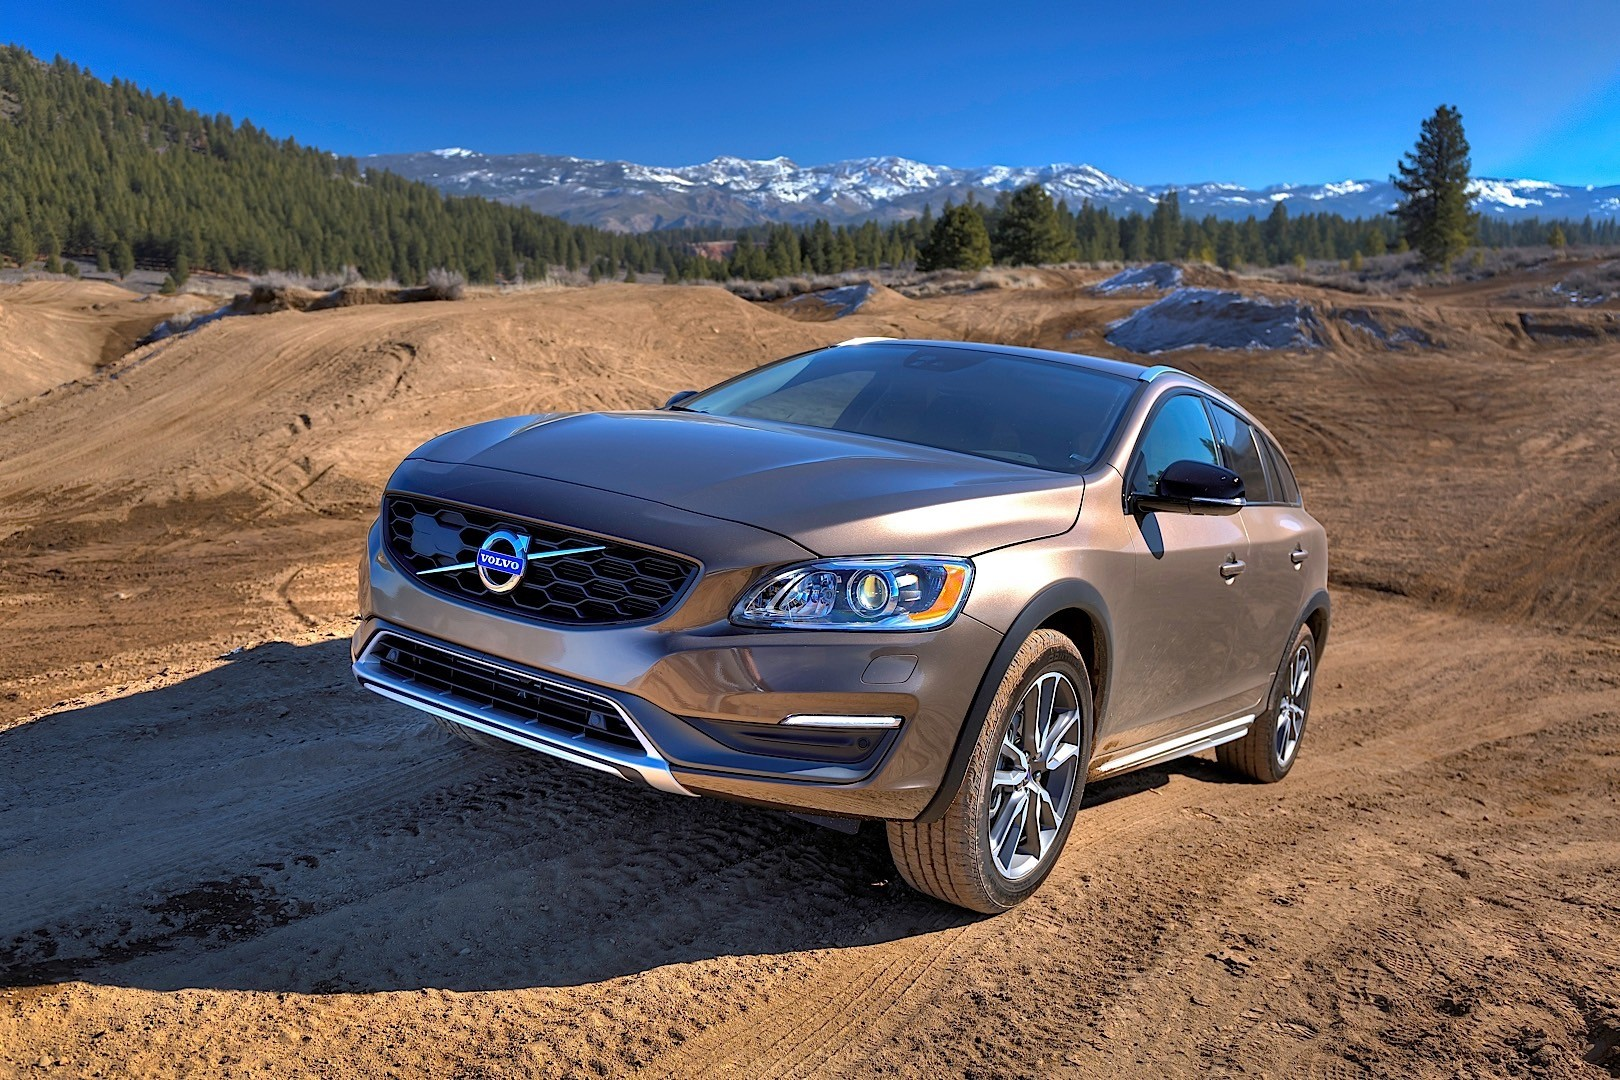 volvo v60 cross country specs 2015 2016 2017 2018 autoevolution. Black Bedroom Furniture Sets. Home Design Ideas